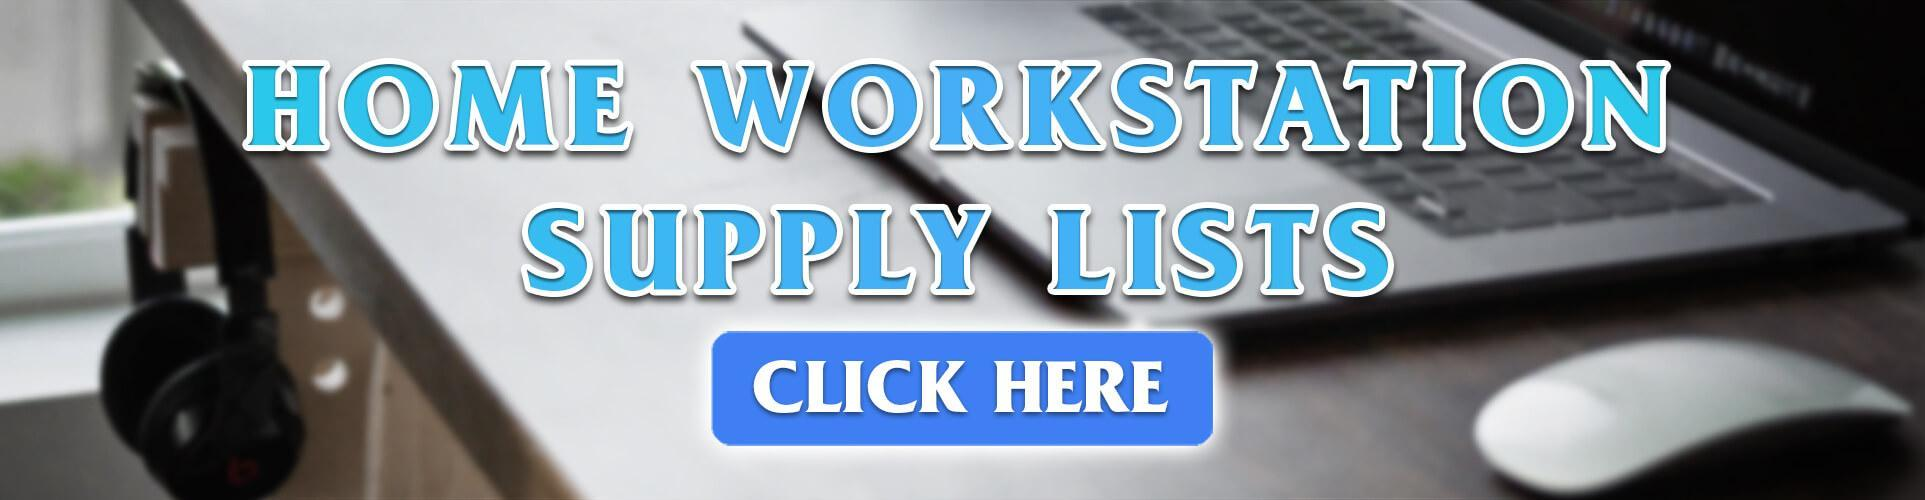 Home Workstation Supply Lists (2020-2021)